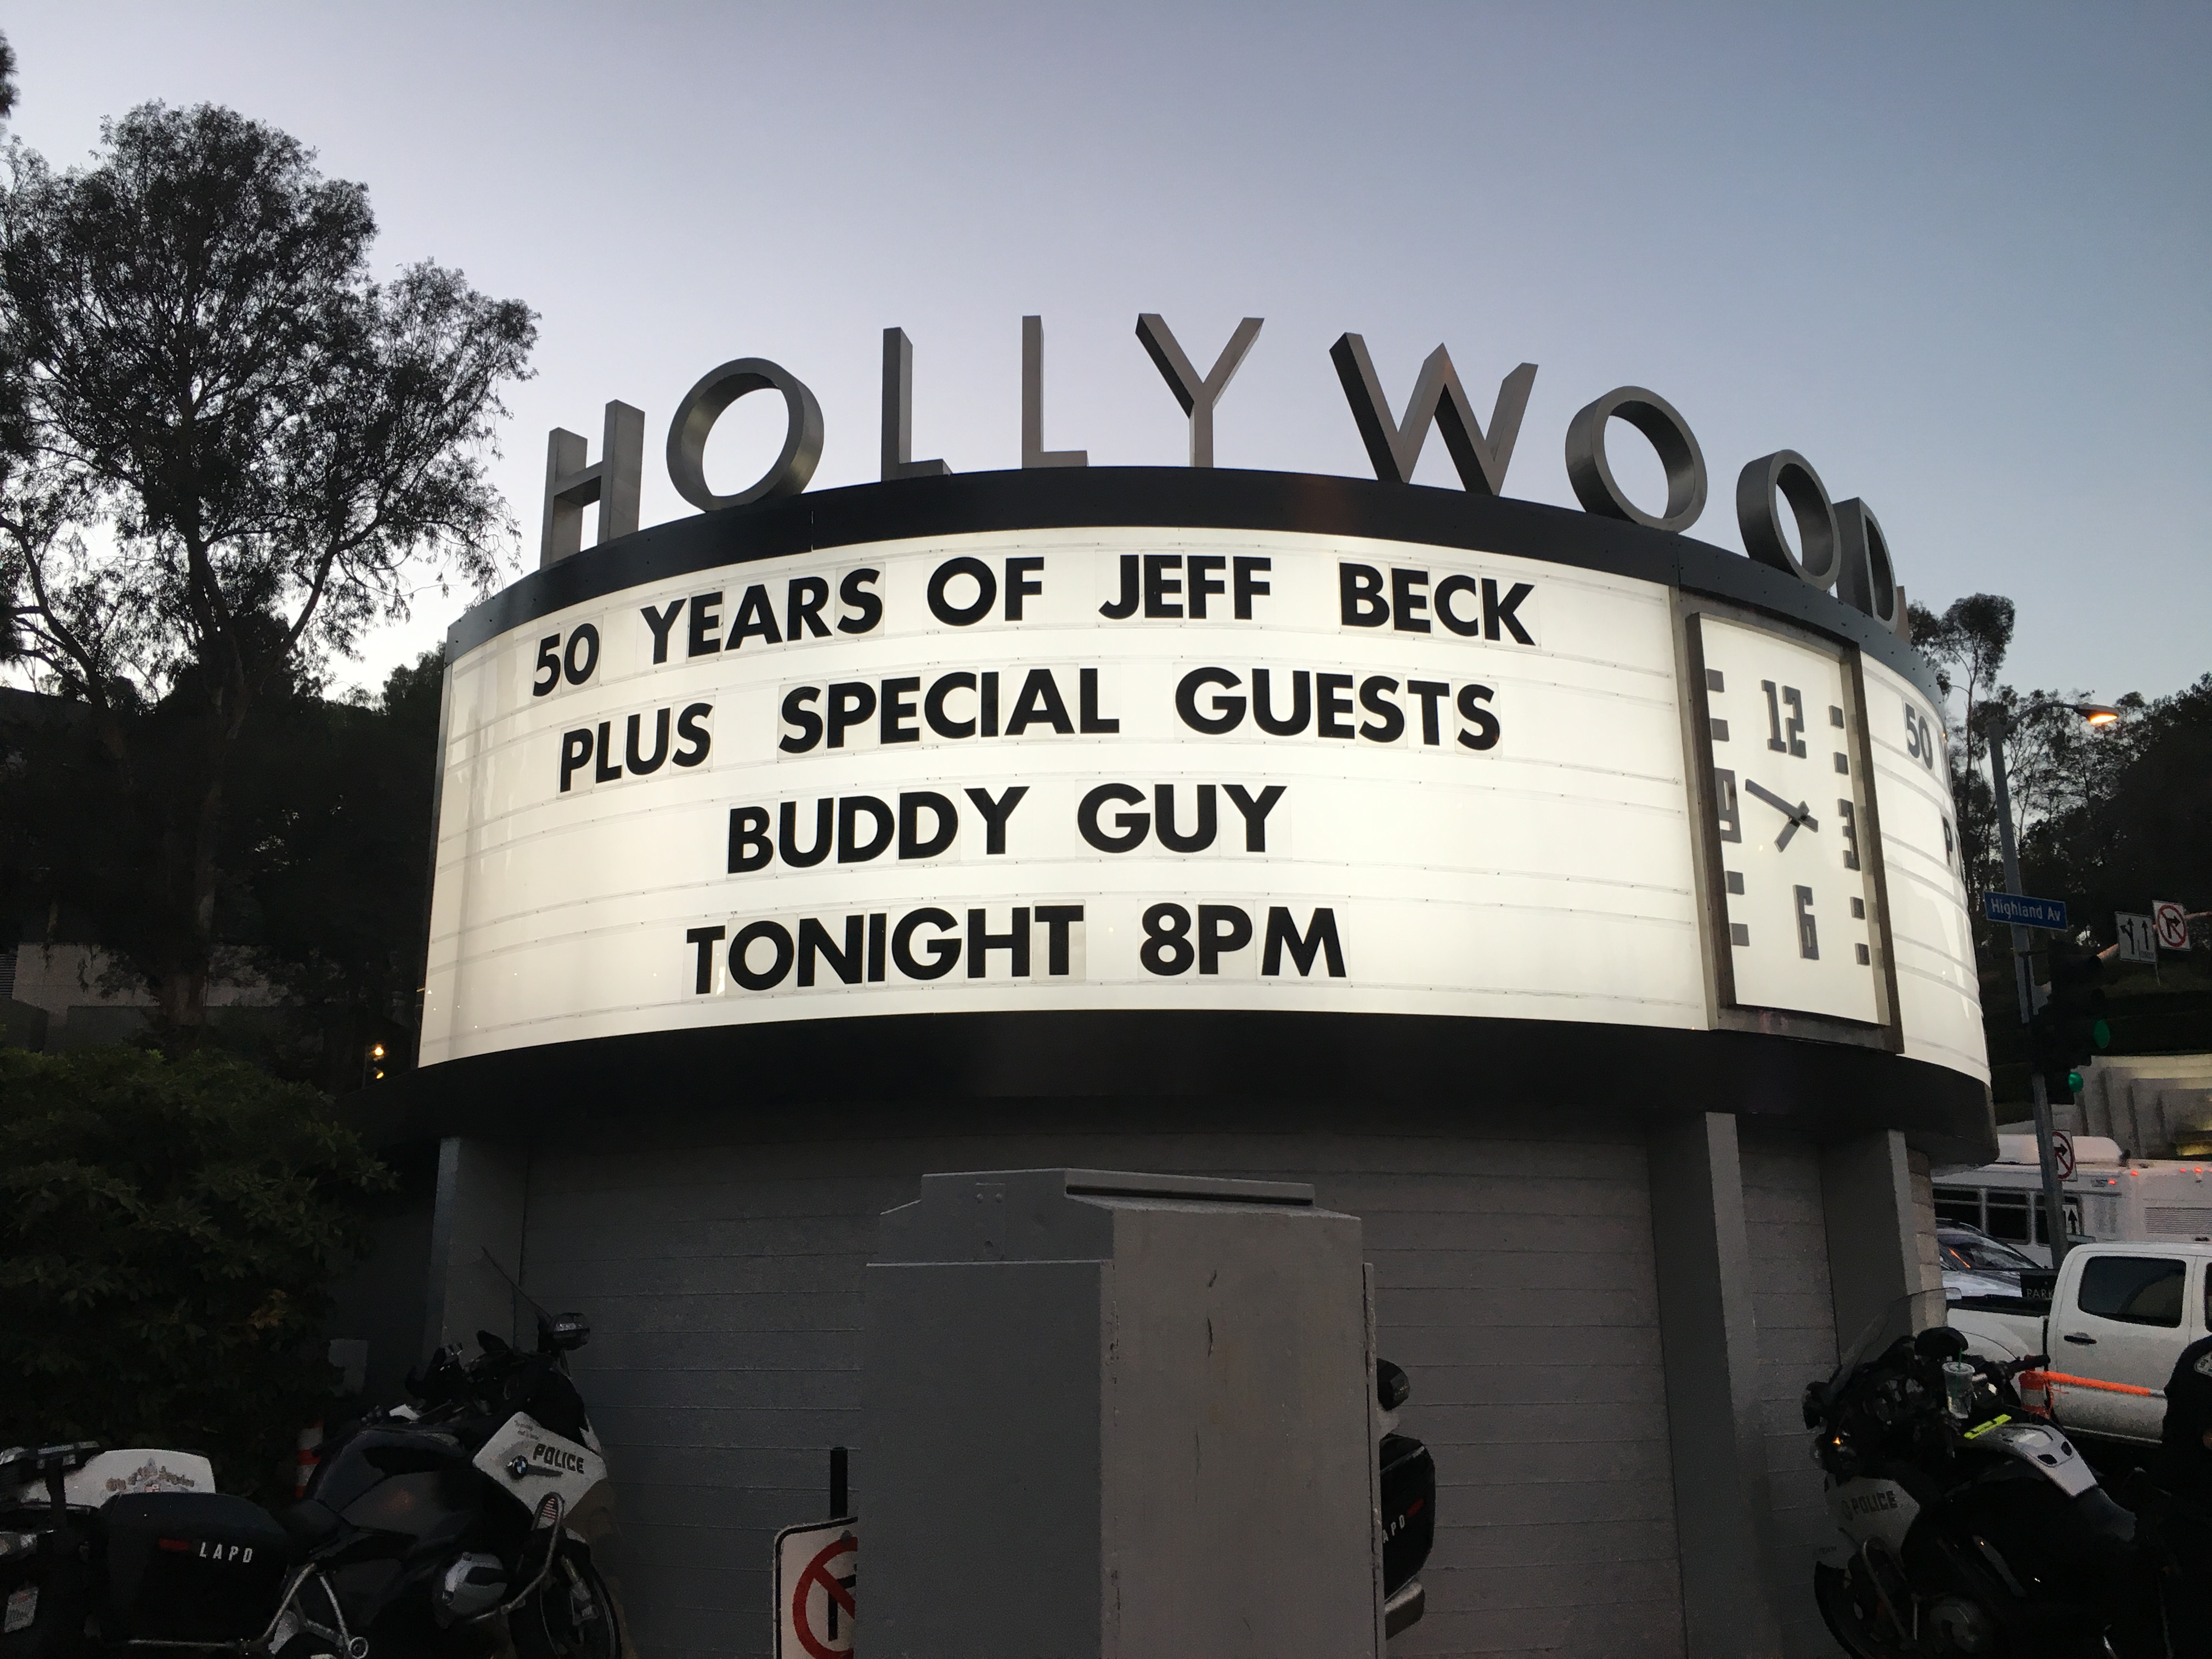 Buddy Guy at Hollywood Bowl 8/10/16.